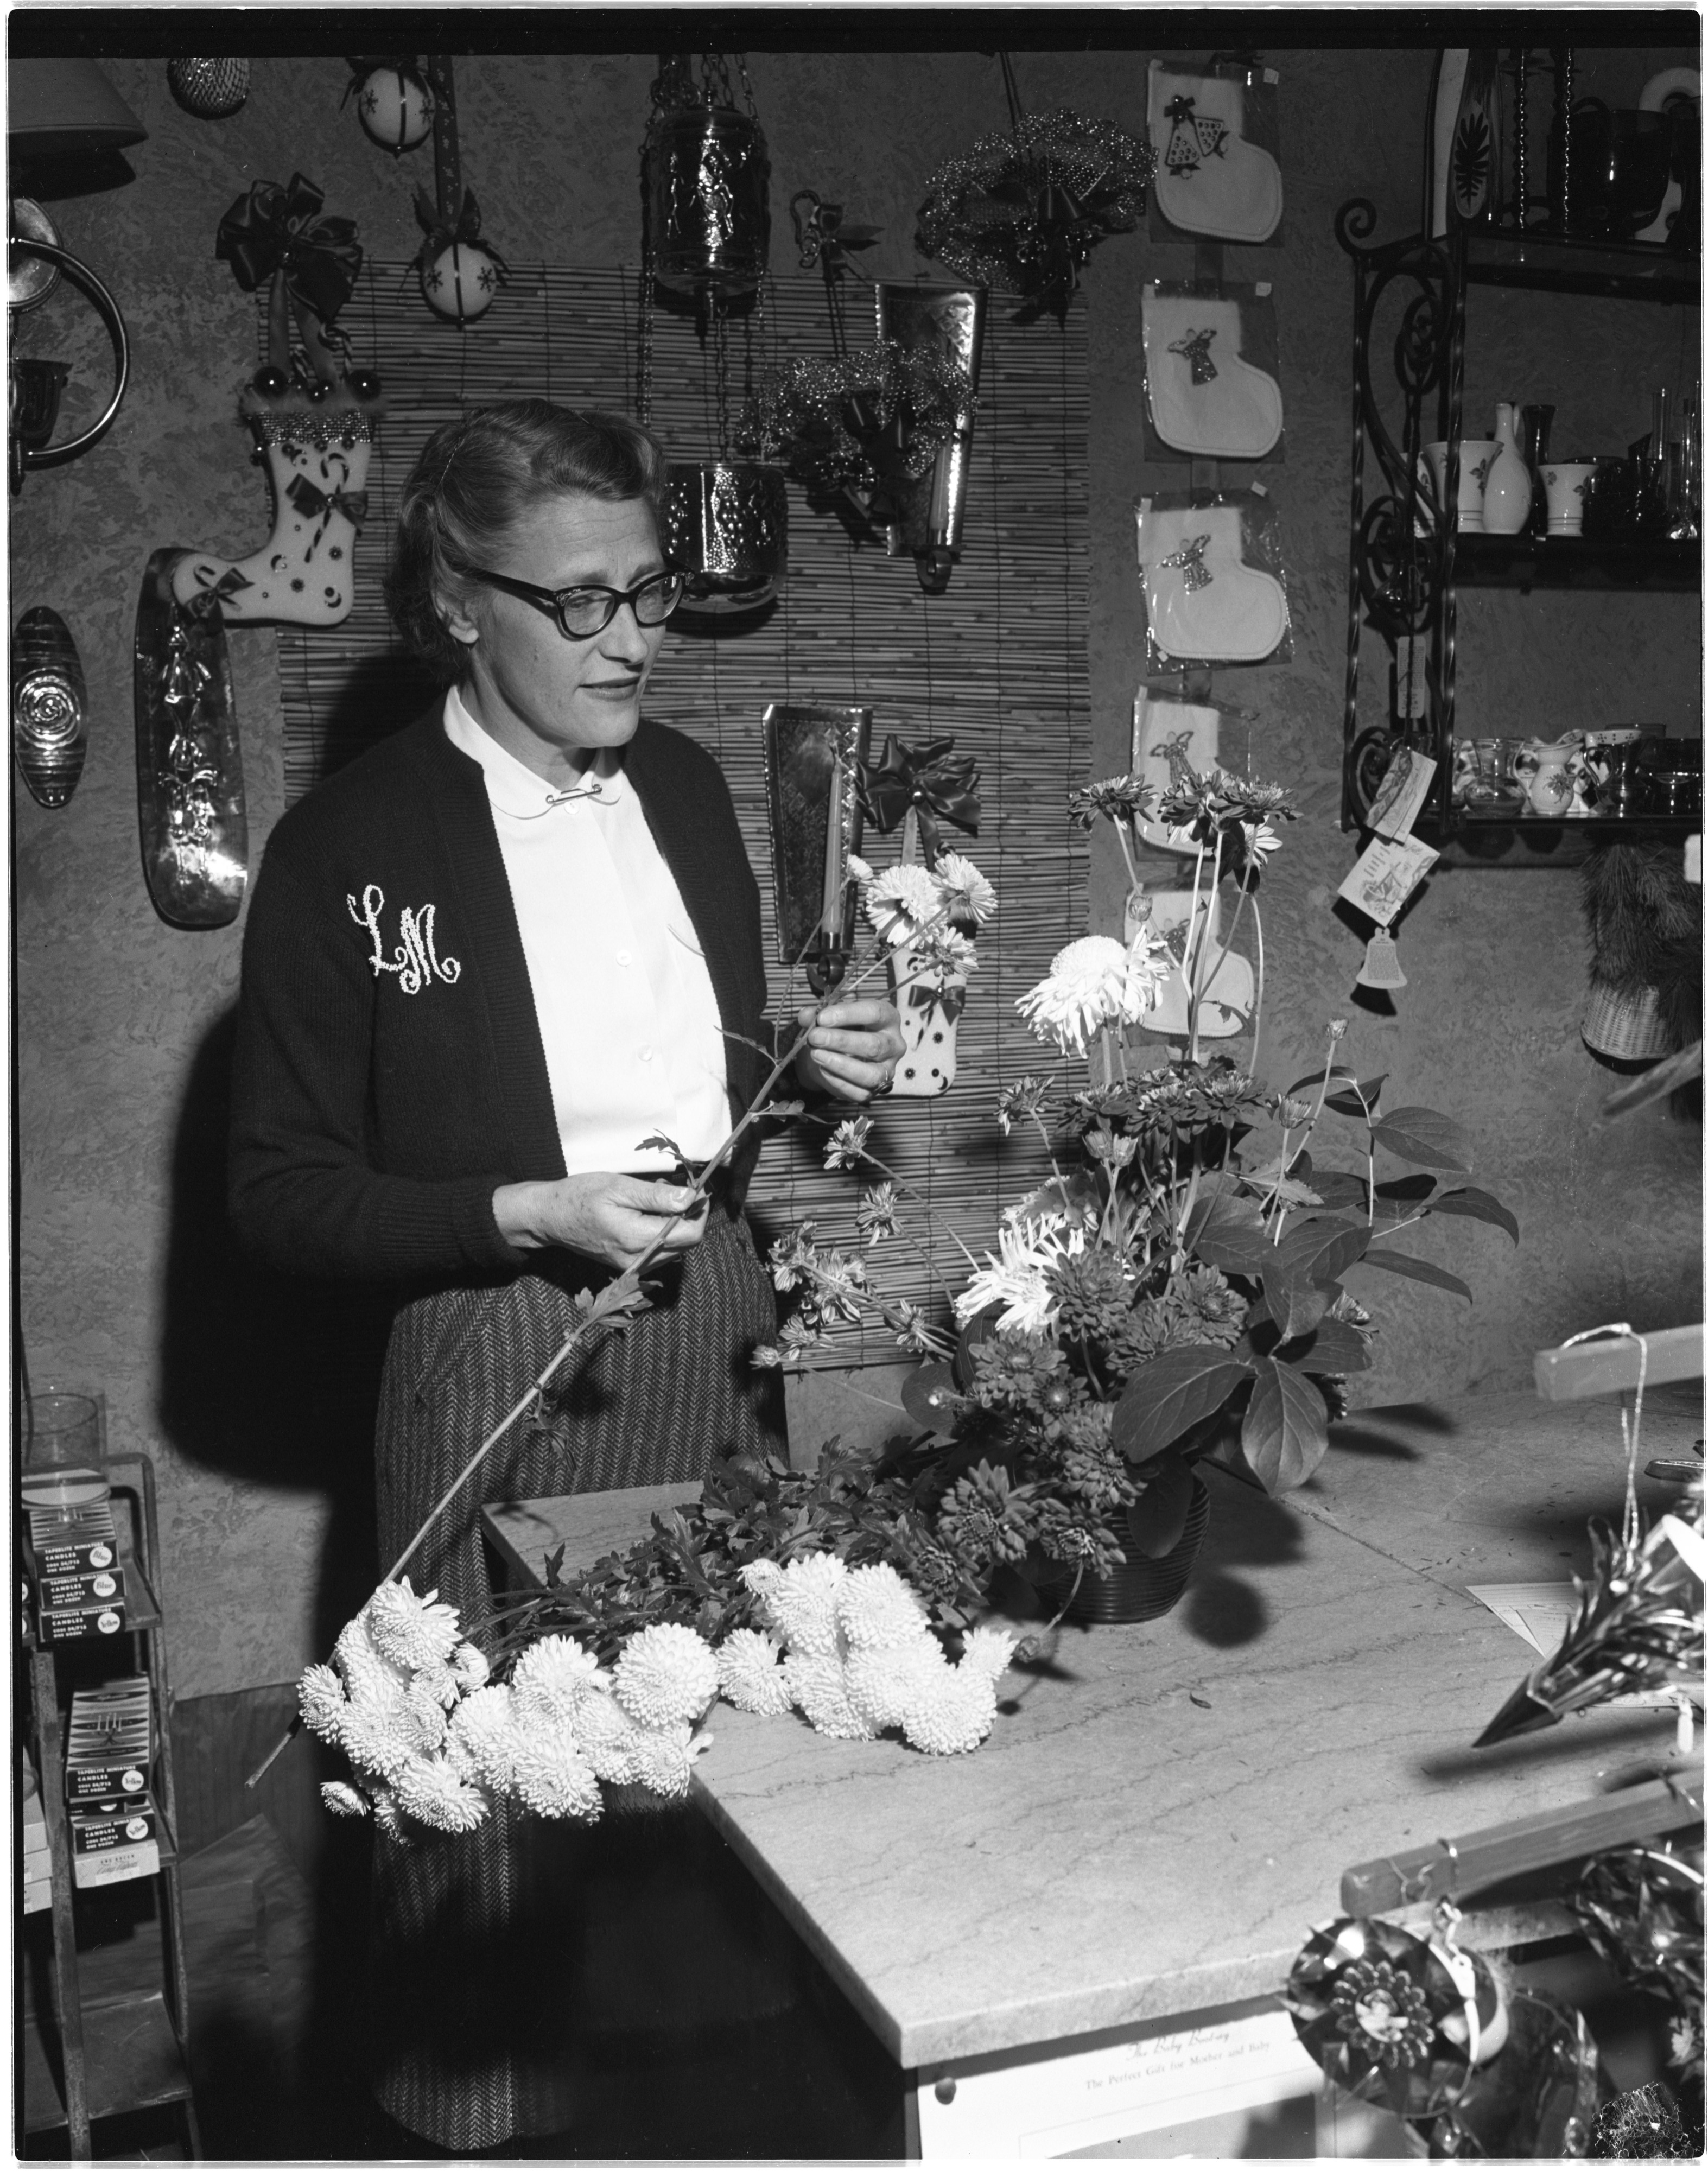 Louise Meyer Arranges Flowers In Her Shop, December 1956 image